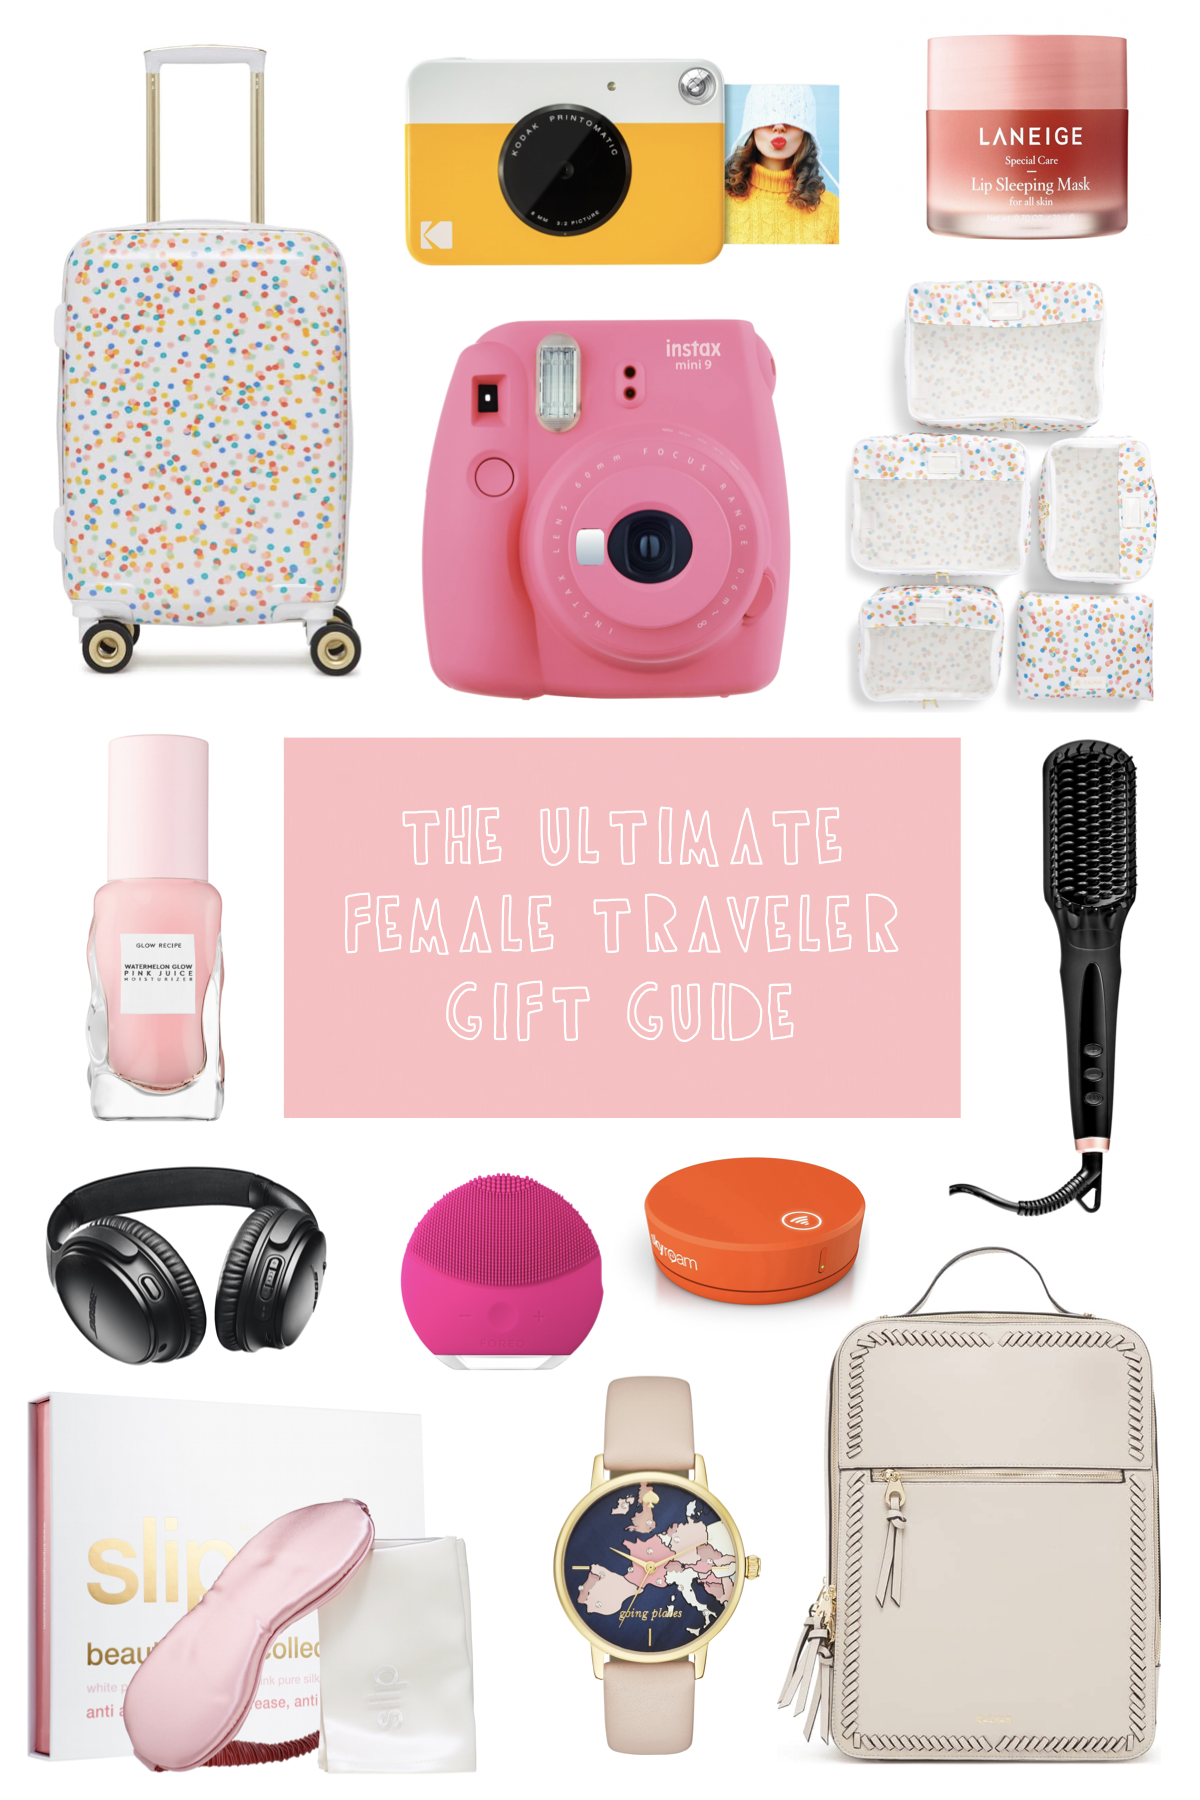 The Ultimate Female Traveler Gift Guide // Travel gift ideas for the ladies in your life, including tech, fashion, luggage ideas, and more! // www.readysetjetset.net #readysetjetset #giftguide #holidayguide #shopping #travelgifts